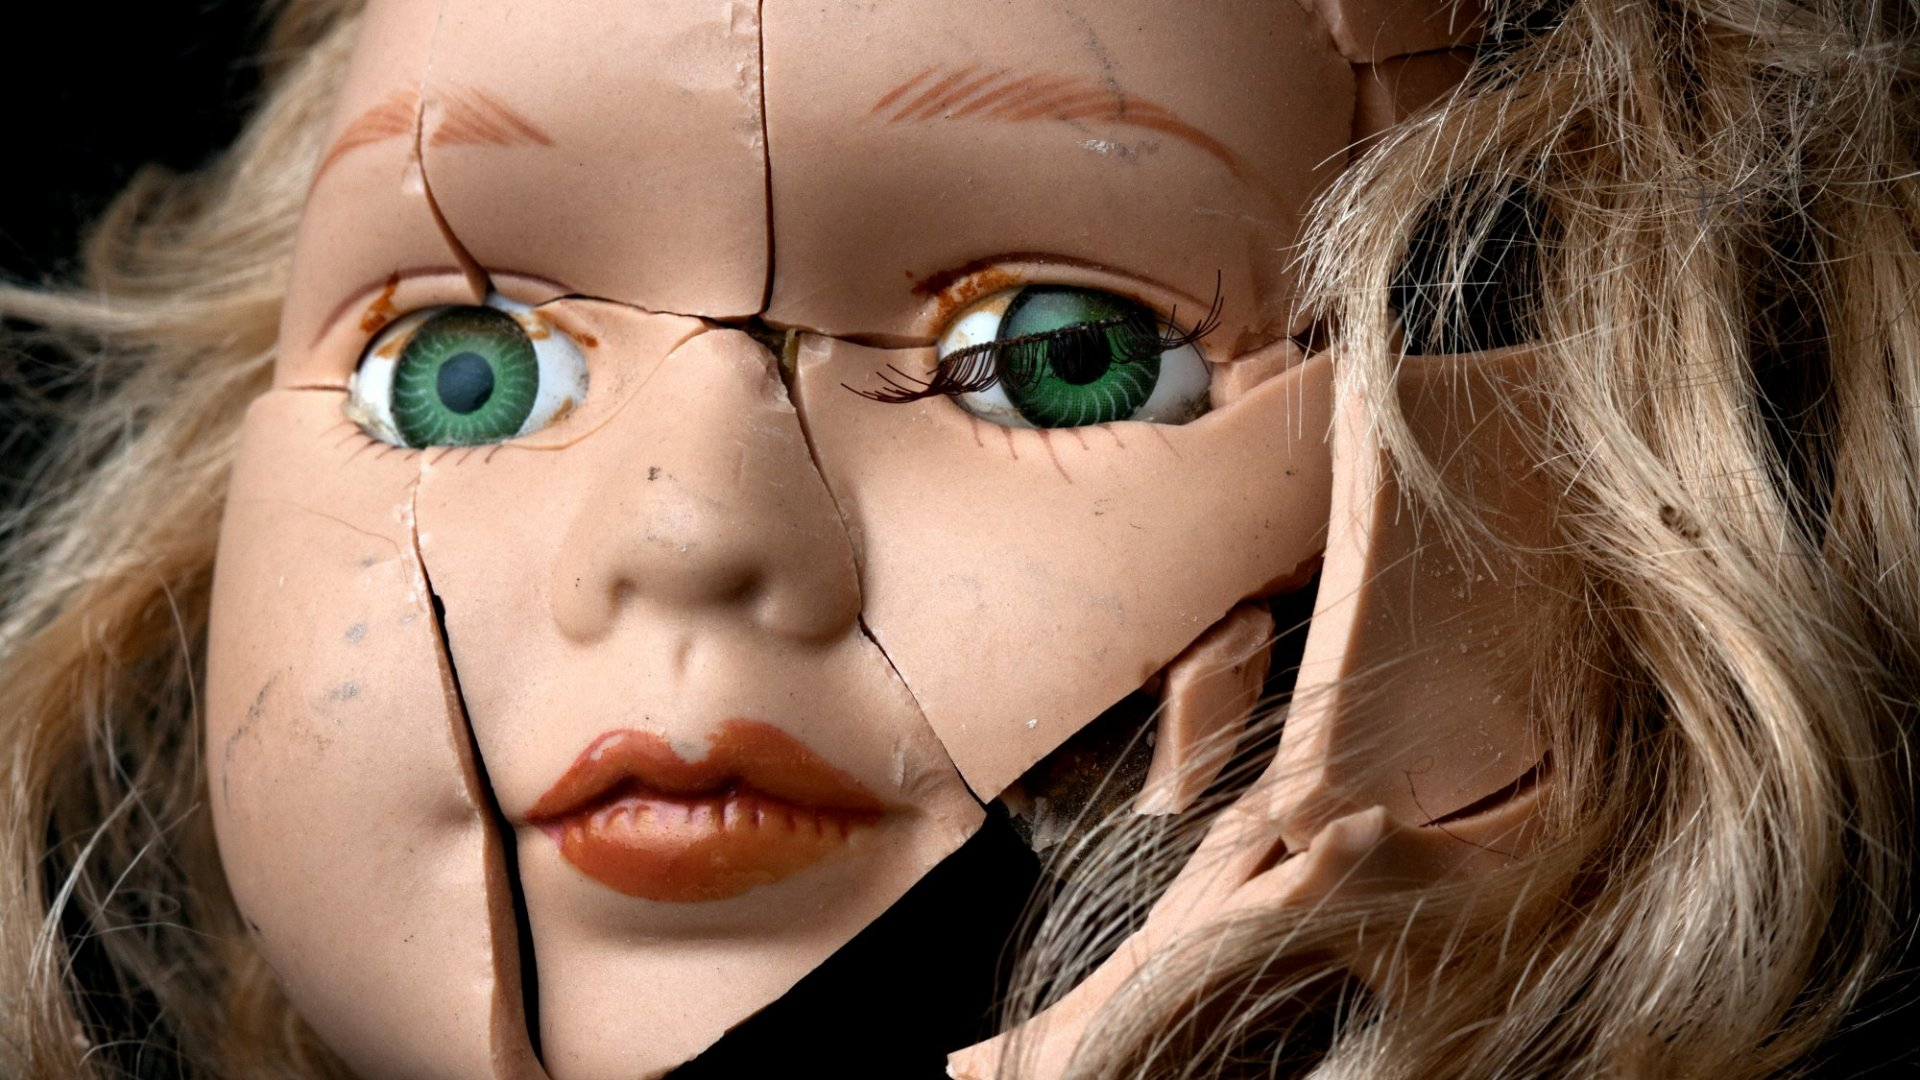 Parents Ordered By Government To Destroy Doll That Can Spy On Children and Adults